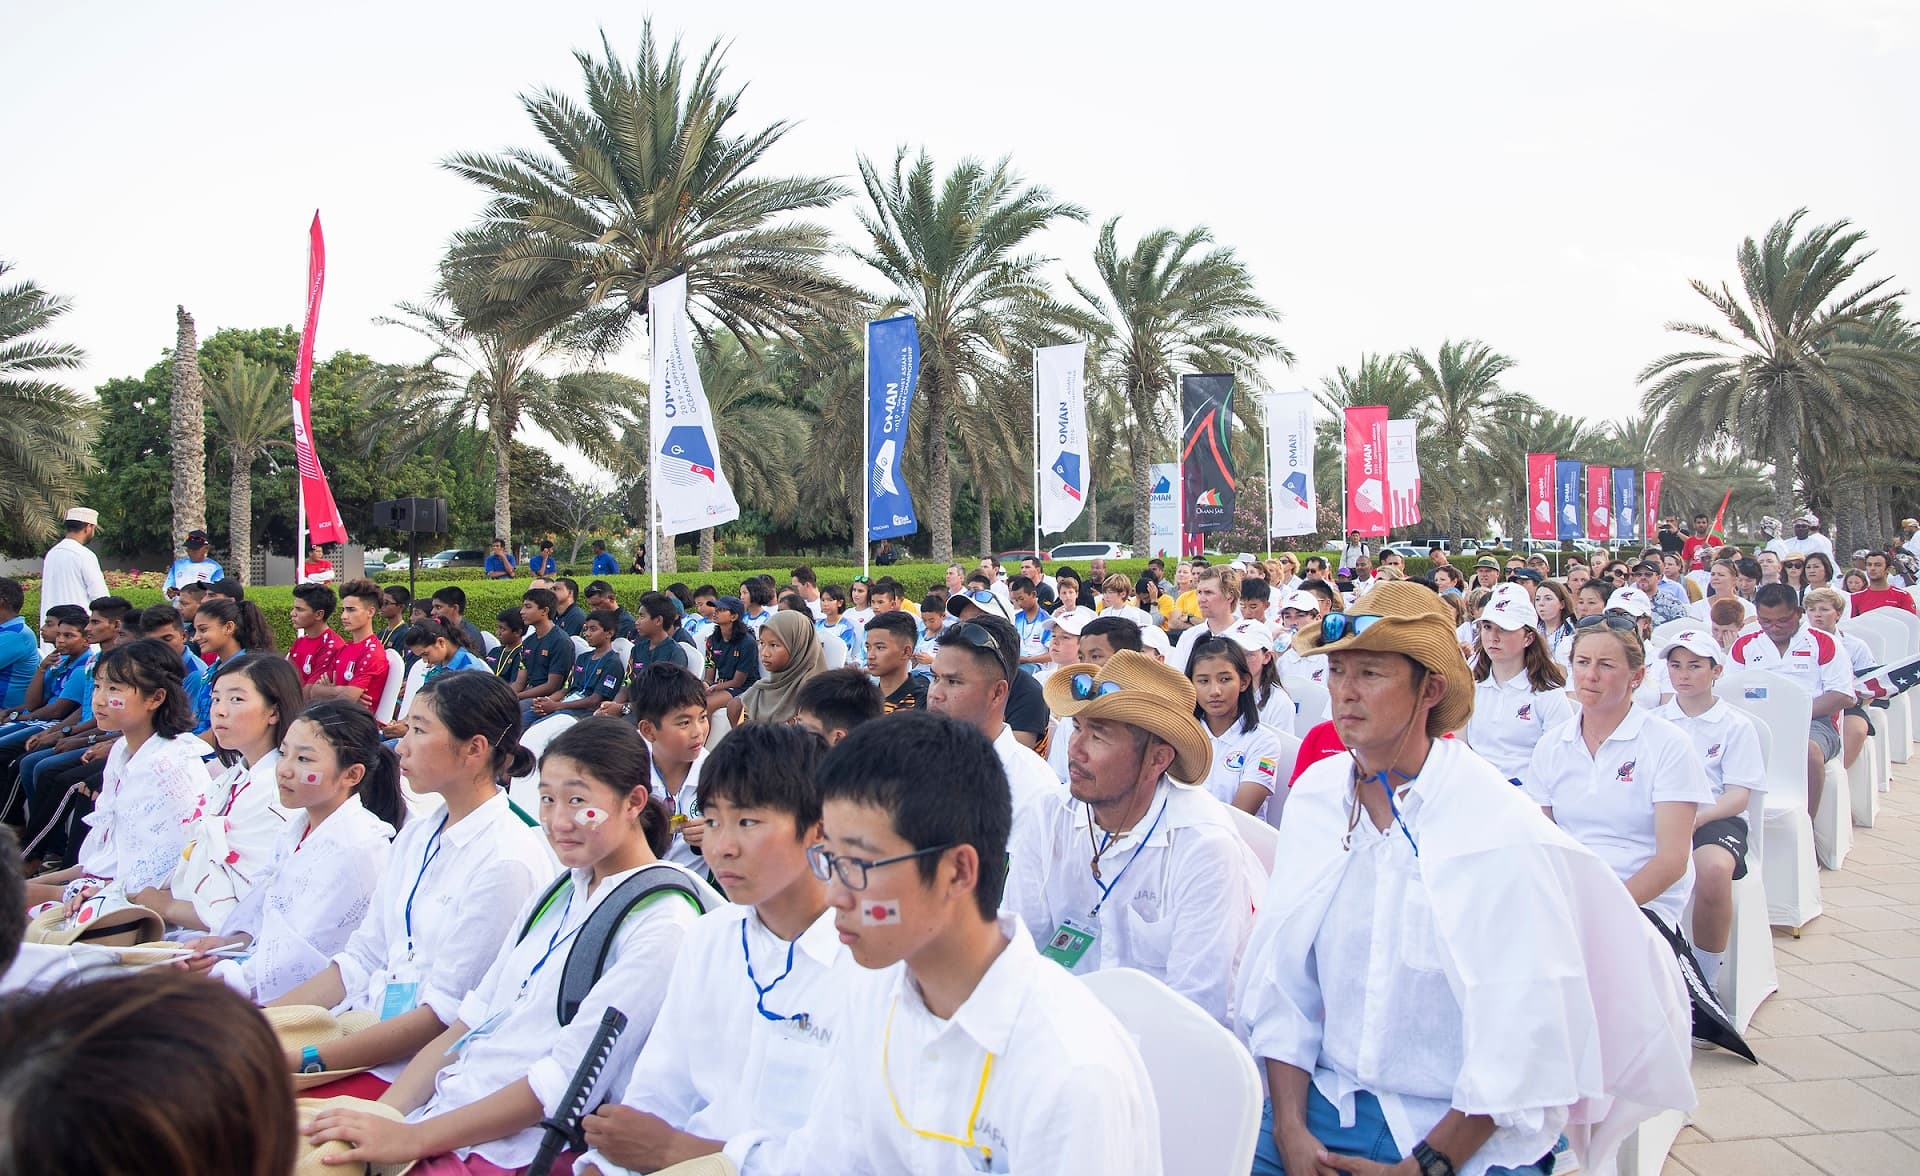 Oman welcomes many of world's best youth sailors to high-profile international championship